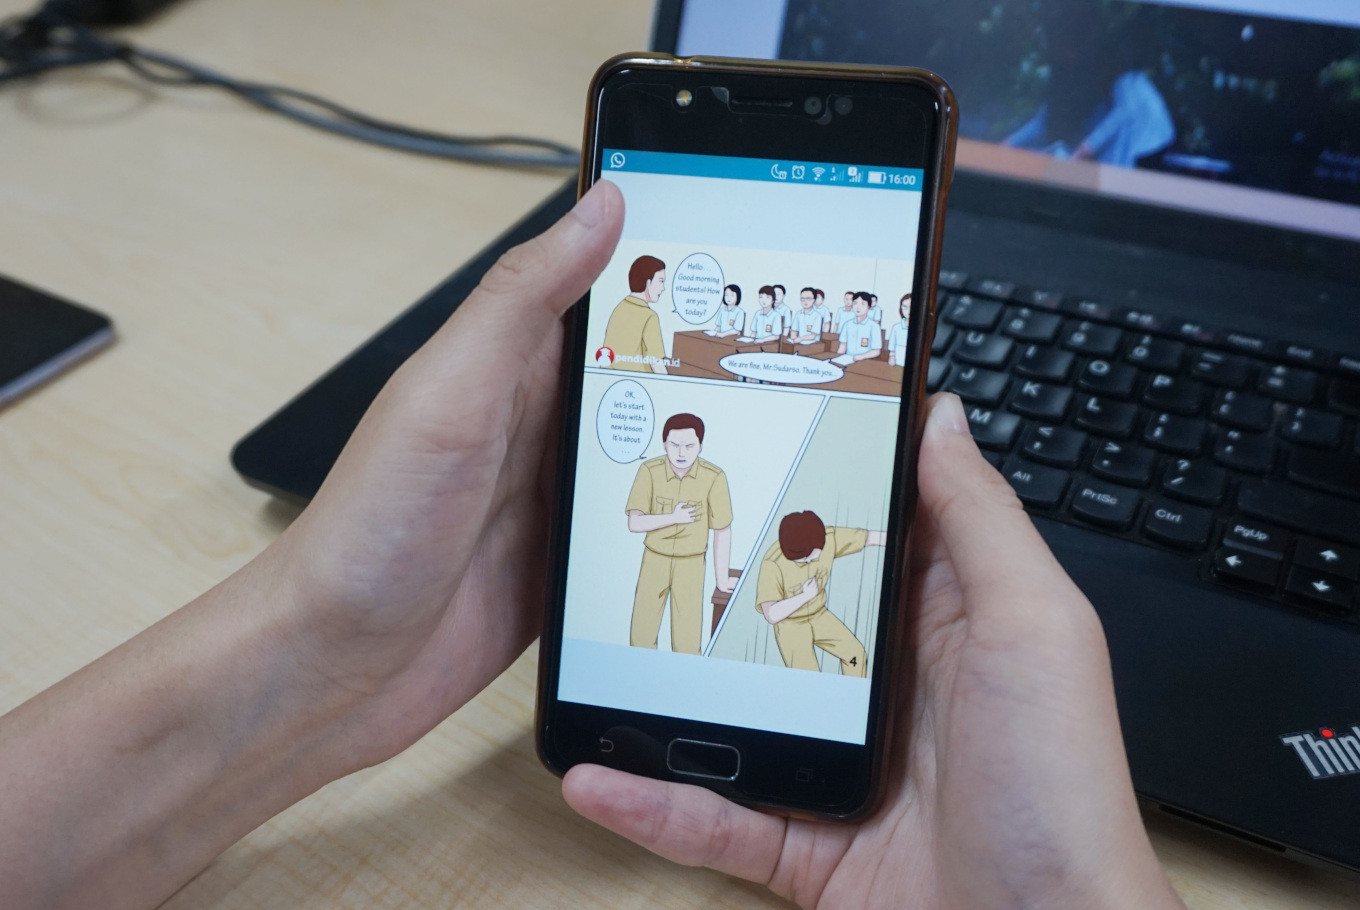 Indonesian digital comic aims to raise awareness about heart attacks